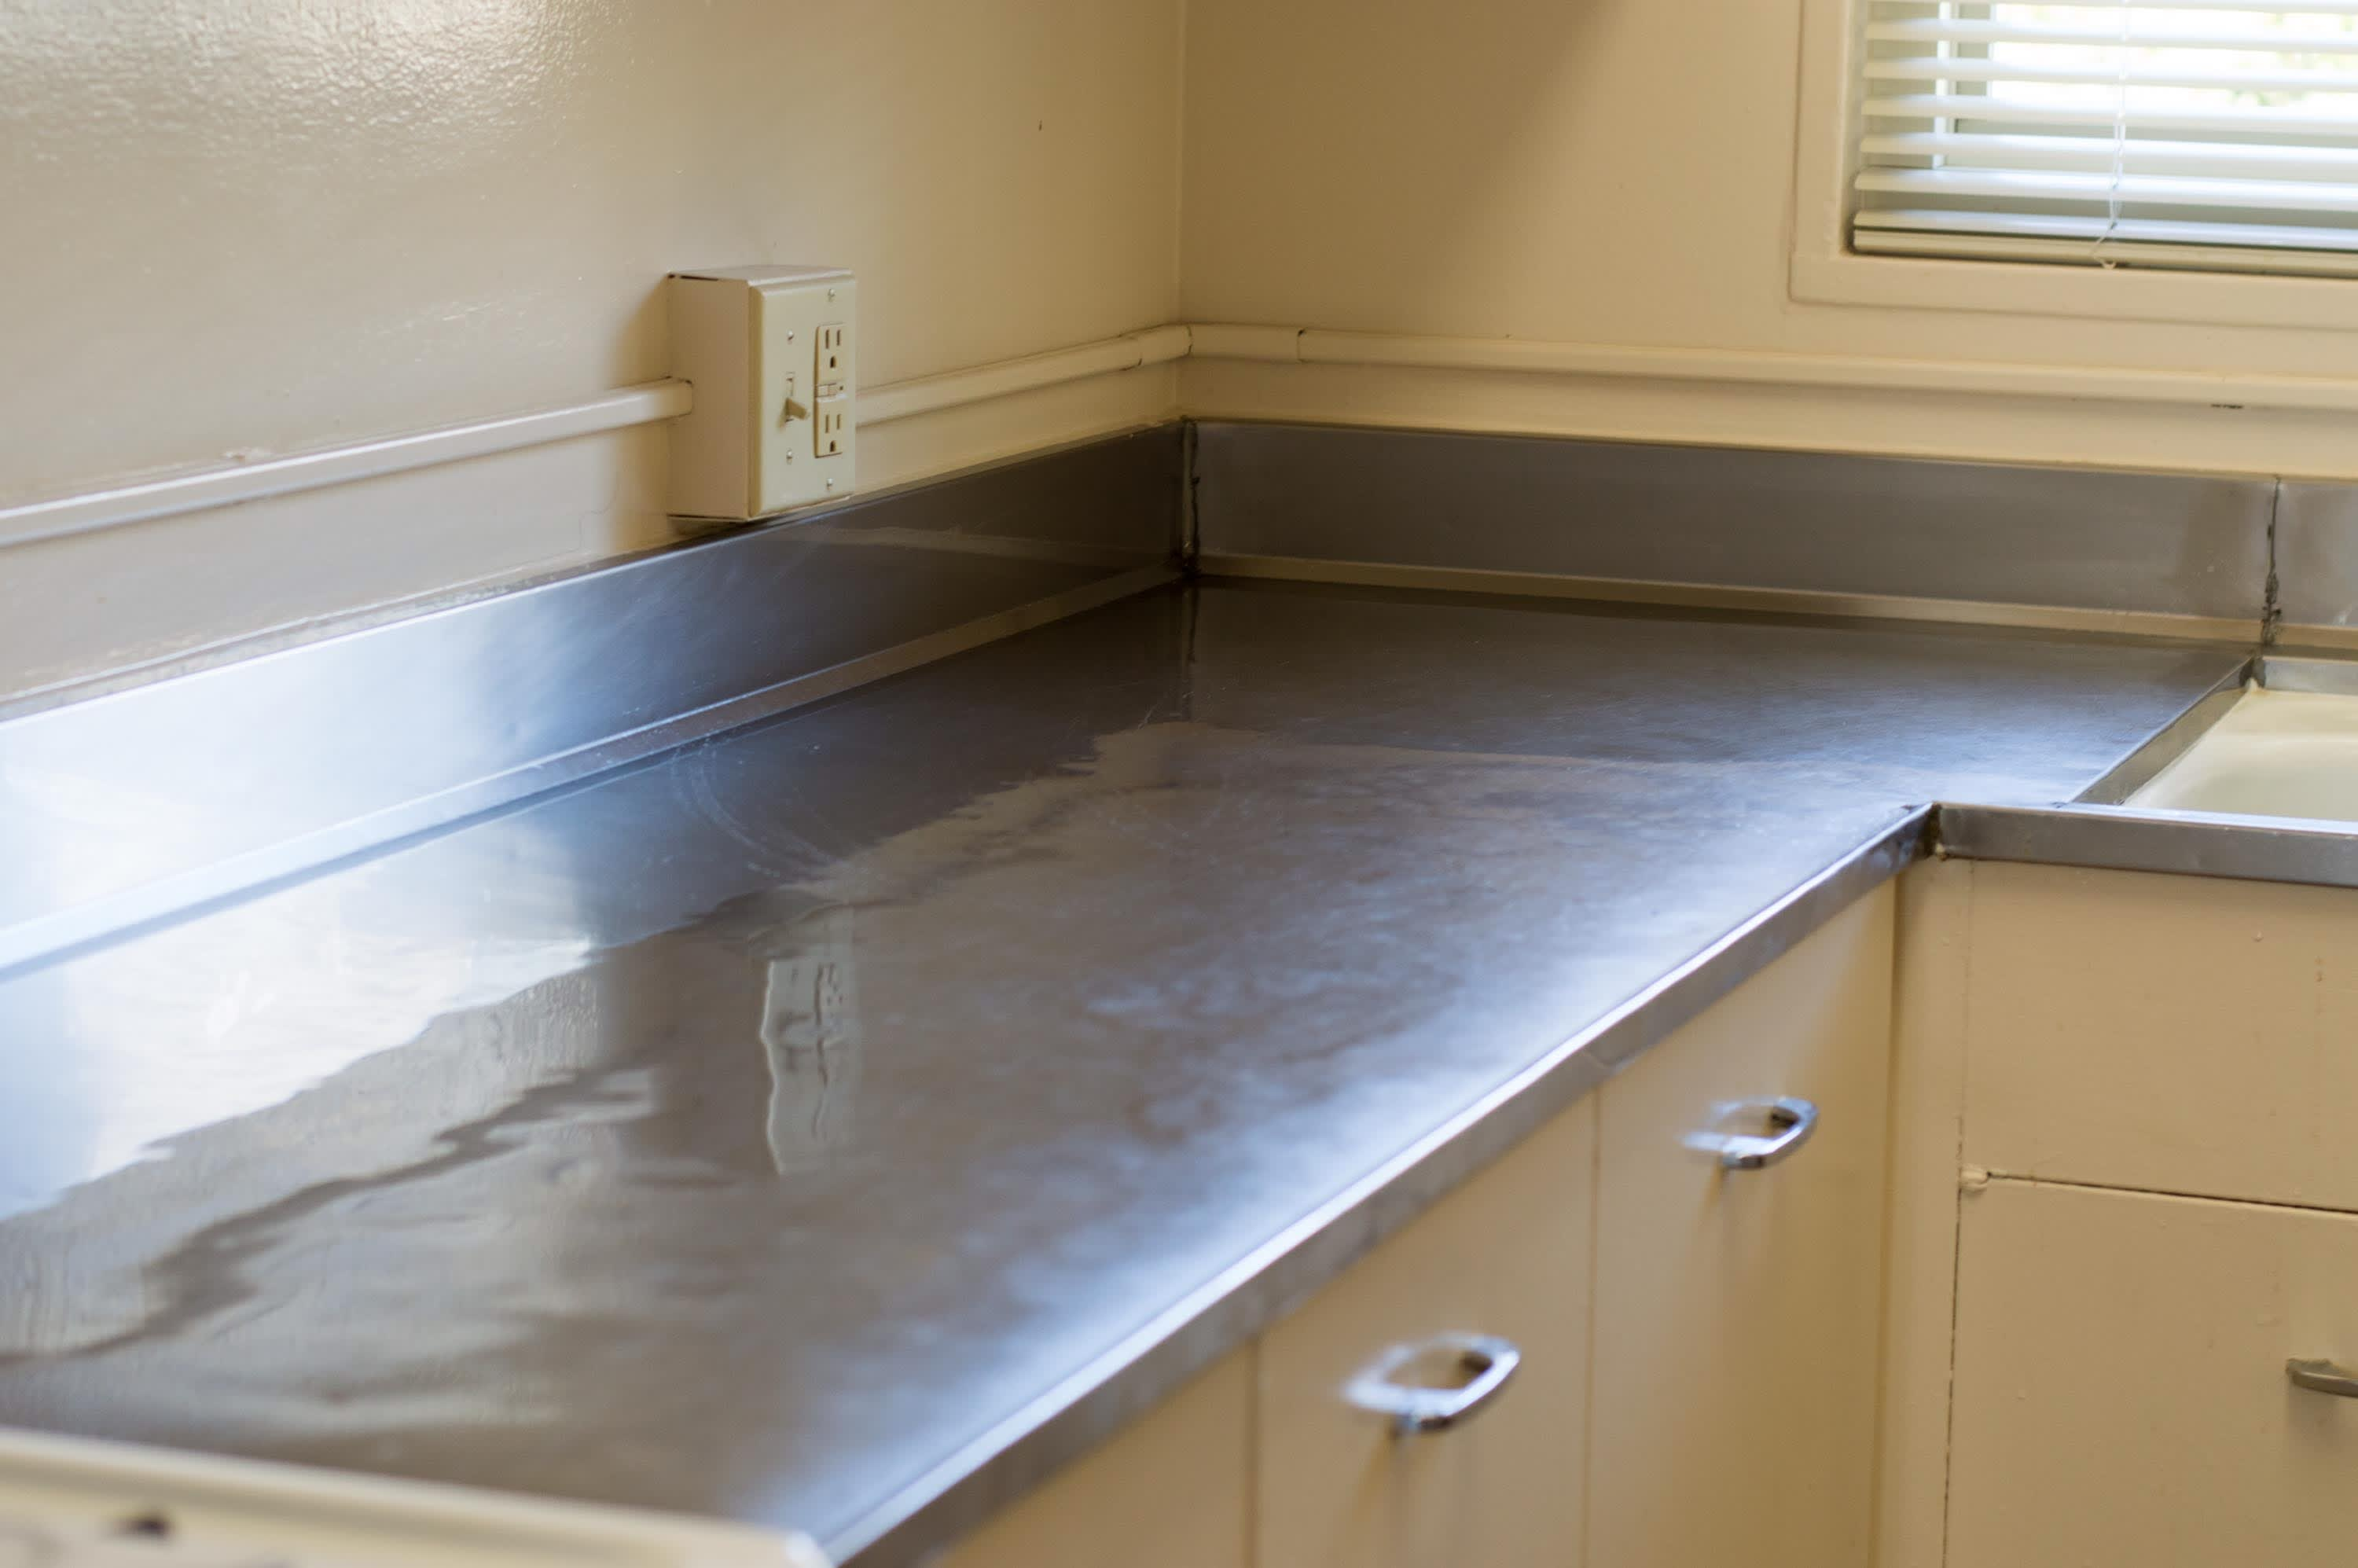 How To Clean Stainless Steel Countertops To a Shiny, Streak-Free Finish: gallery image 5